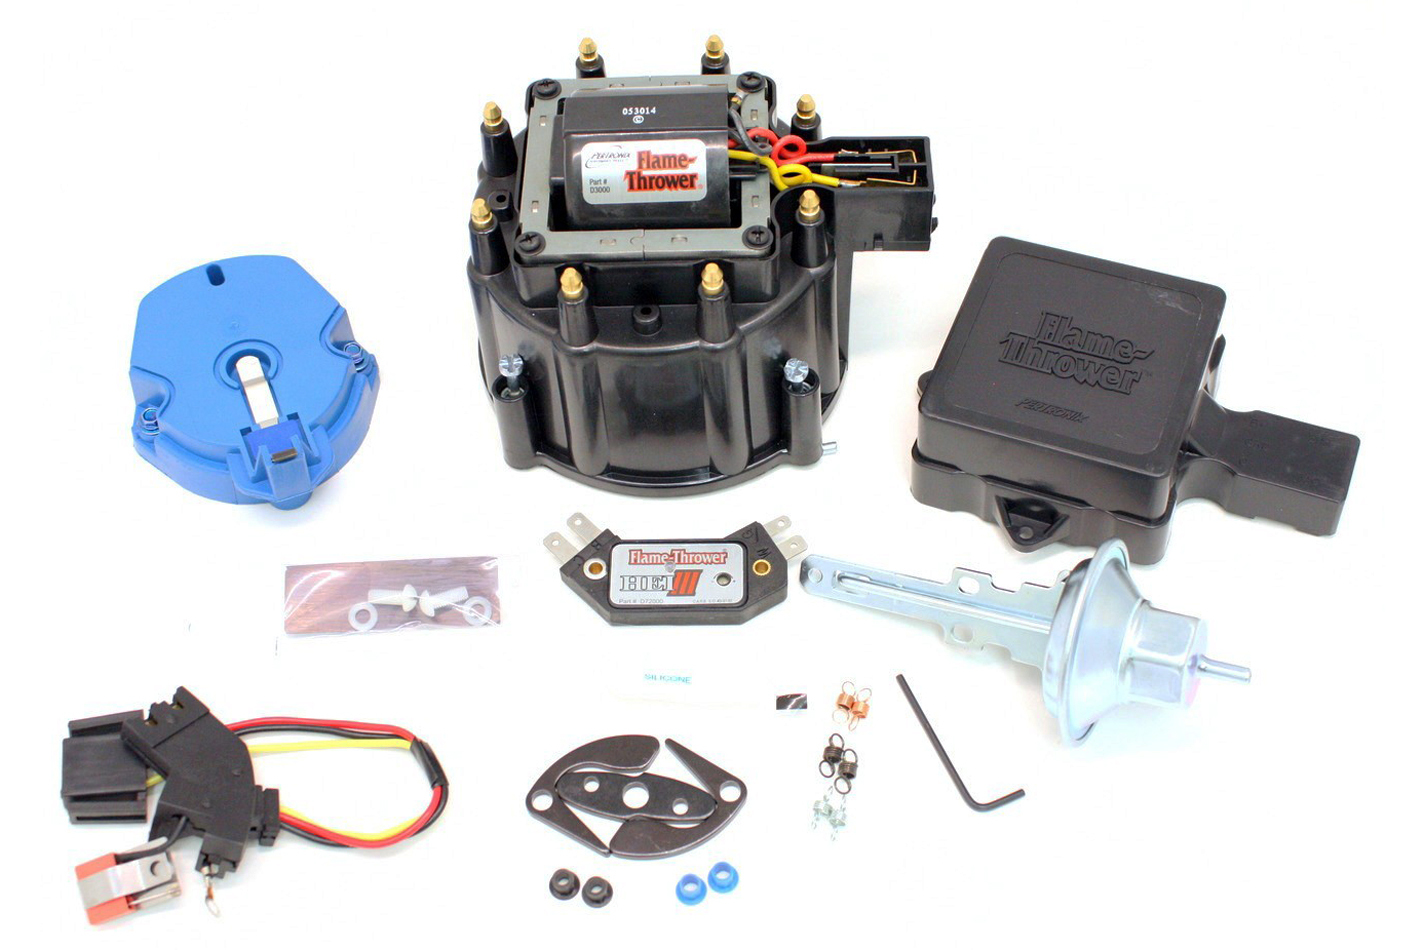 Pertronix Ignition D78000 Ignition Tune Up Kit, Flamethrower, HEI, Cap / Rotor / Coil / Coil Cover / Vacuum Lock Out / Wiring Harness, Small Block Chevy, Kit